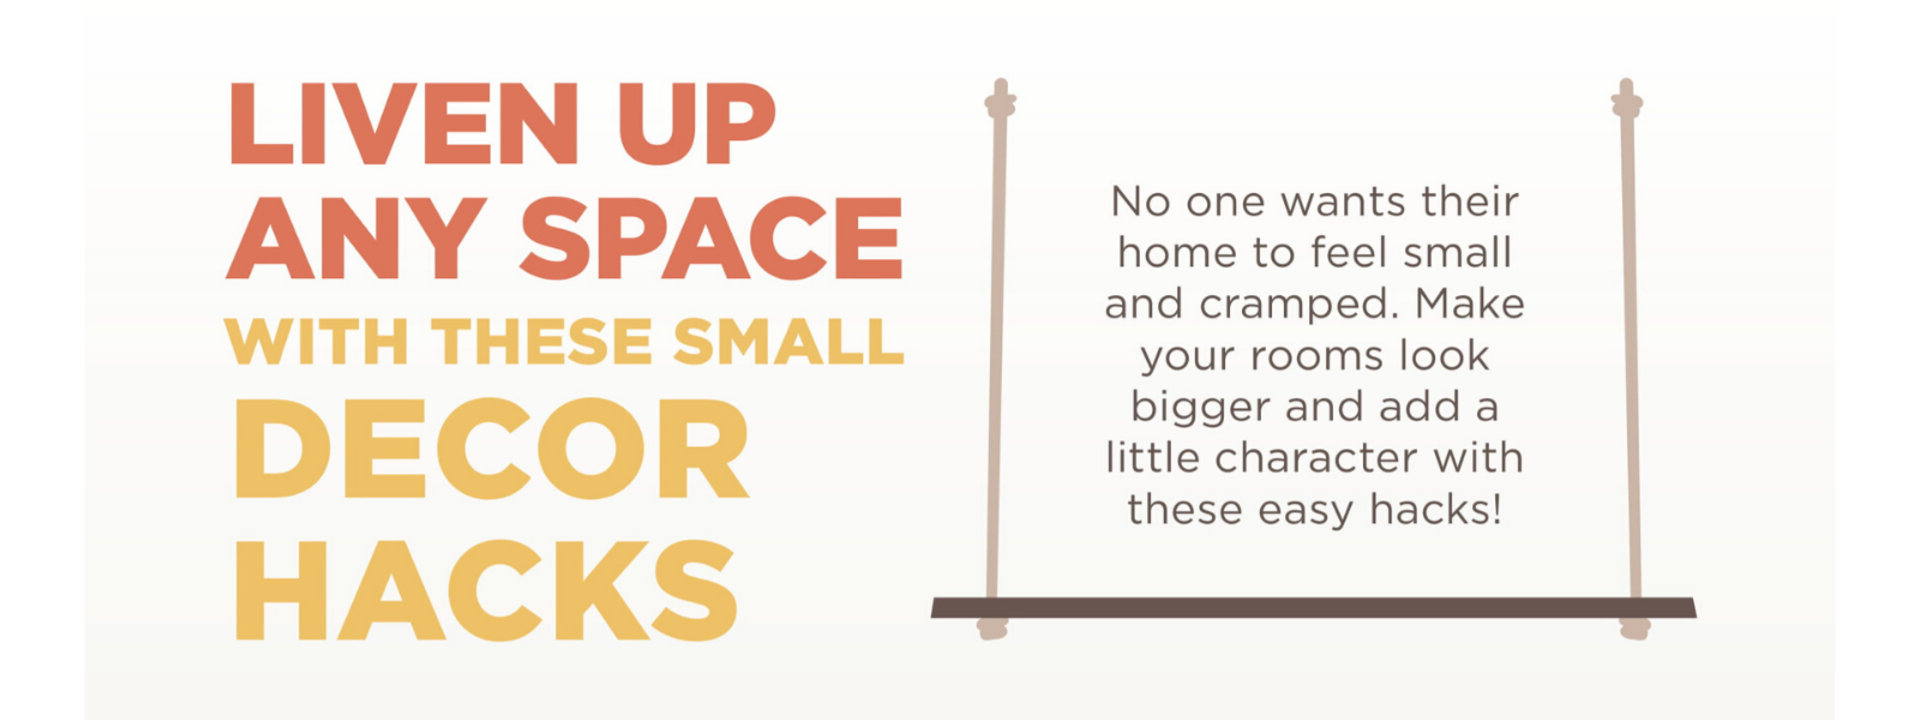 Liven Up Any Space With These Small Decor Hacks